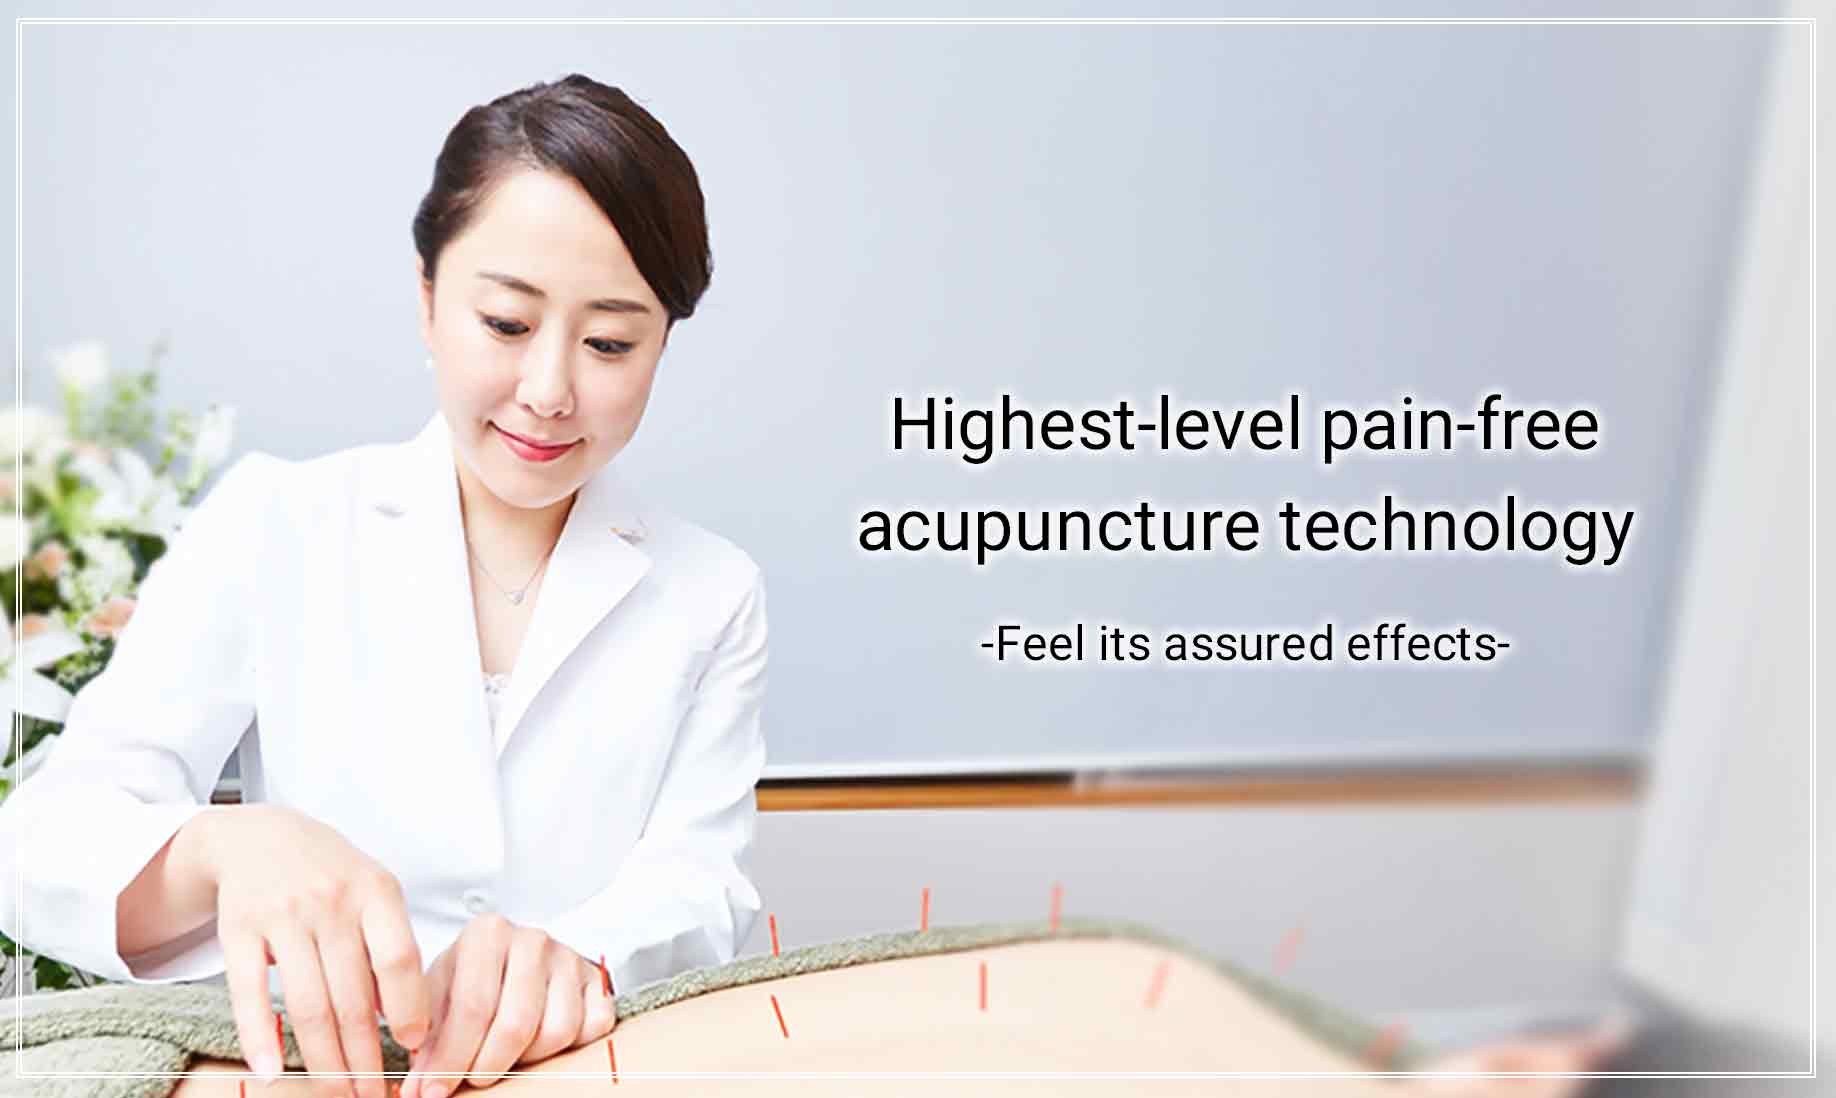 Highest-level pain-free acupuncture technology